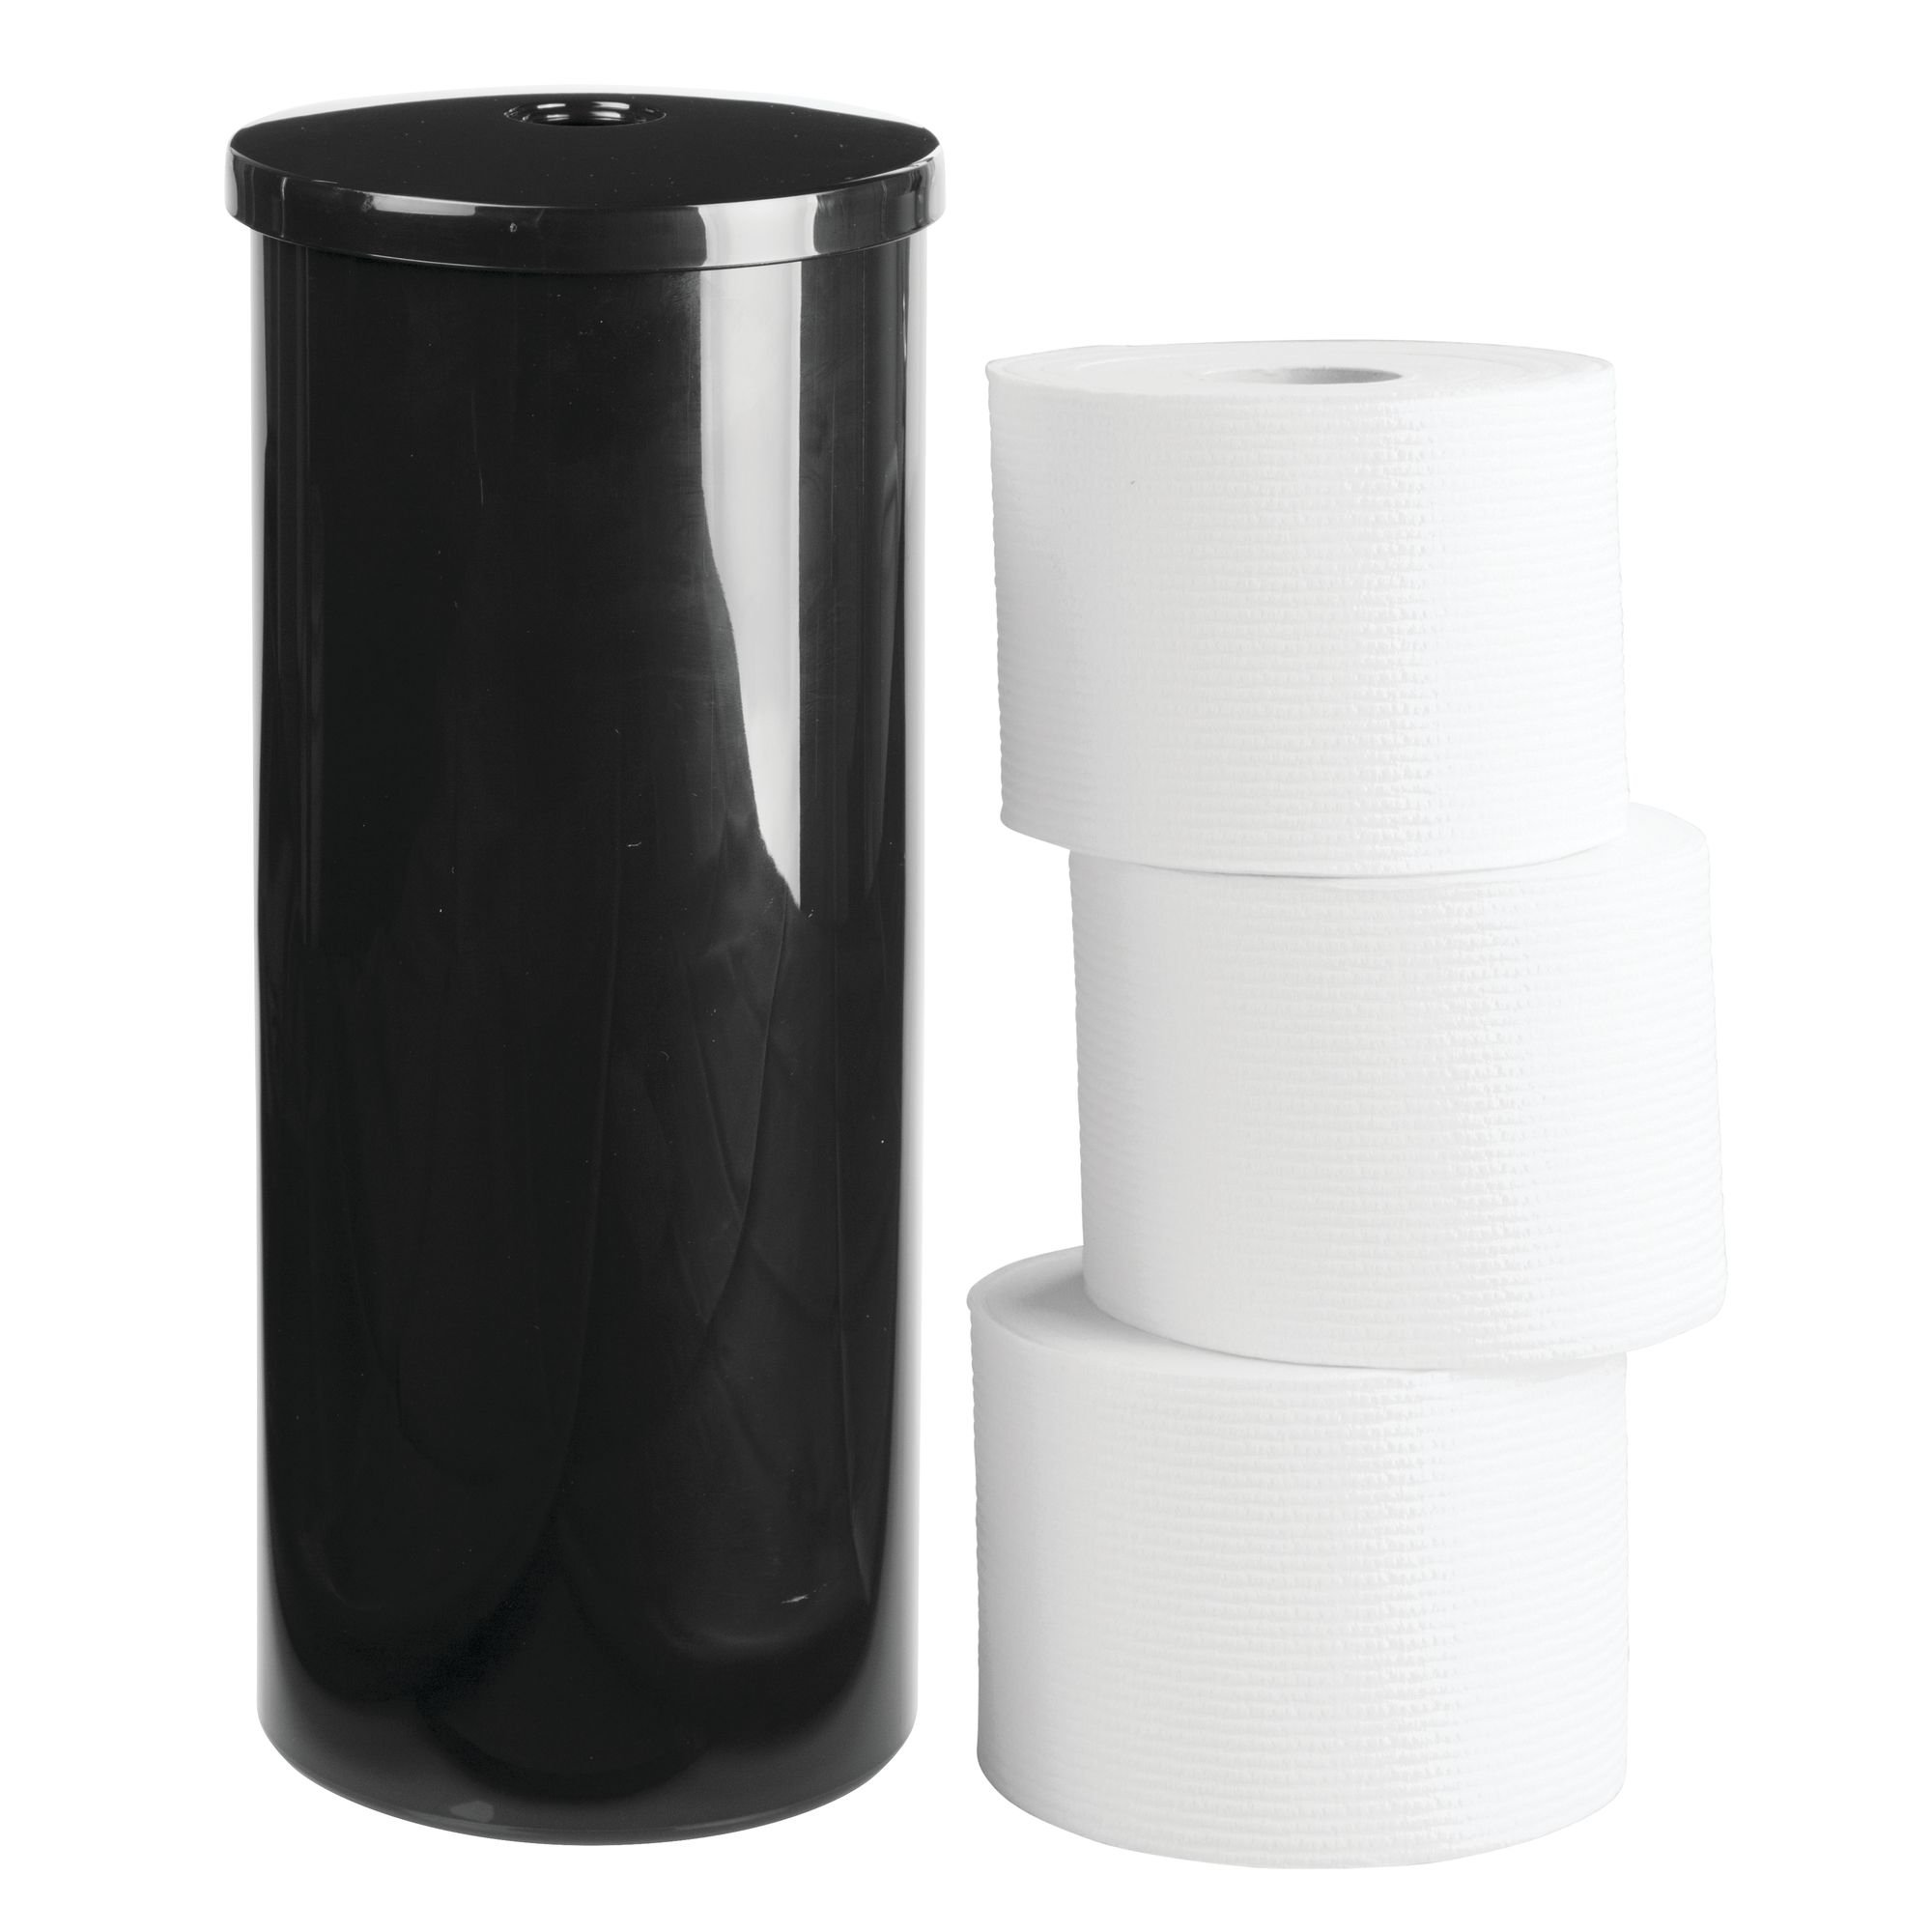 InterDesign Una Free Standing Toilet Paper Holder - Spare Roll Storage for Bathroom, Black by iDesign